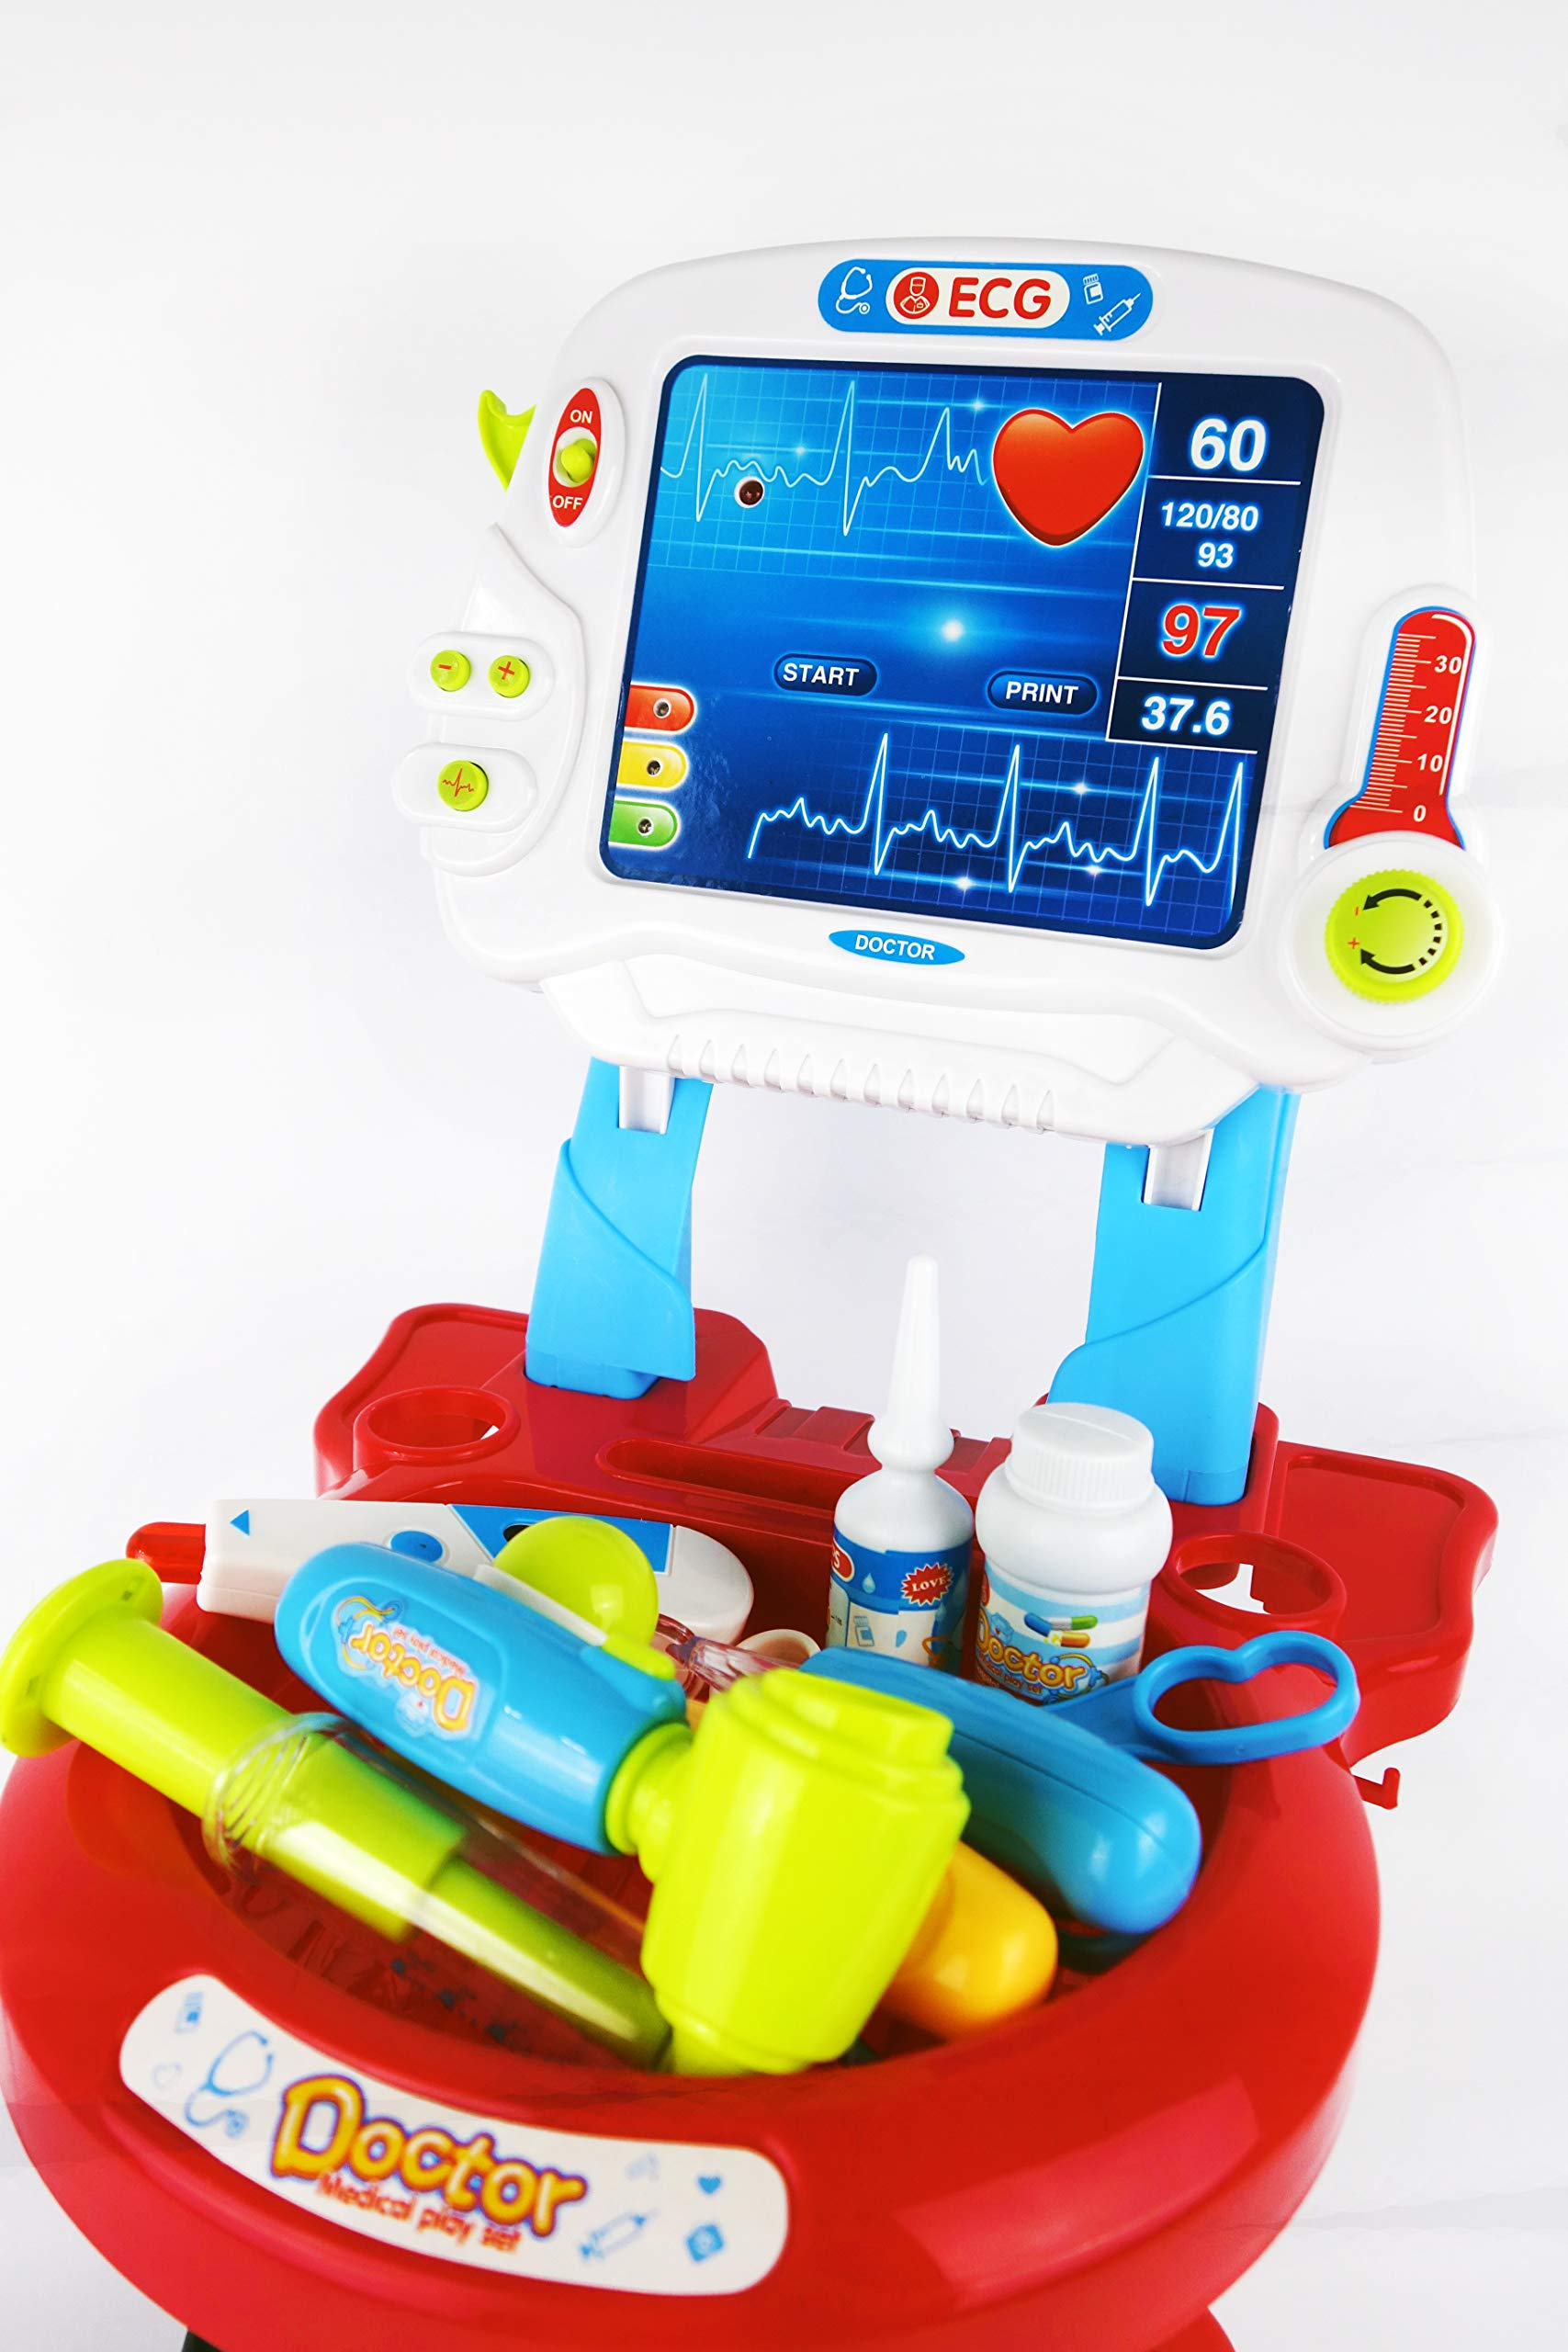 NBD Corp Kids Toy Portable Doctor Set, 17 Piece Set with Play Screen and Play Doctor Instruments by NBD Corp (Image #7)